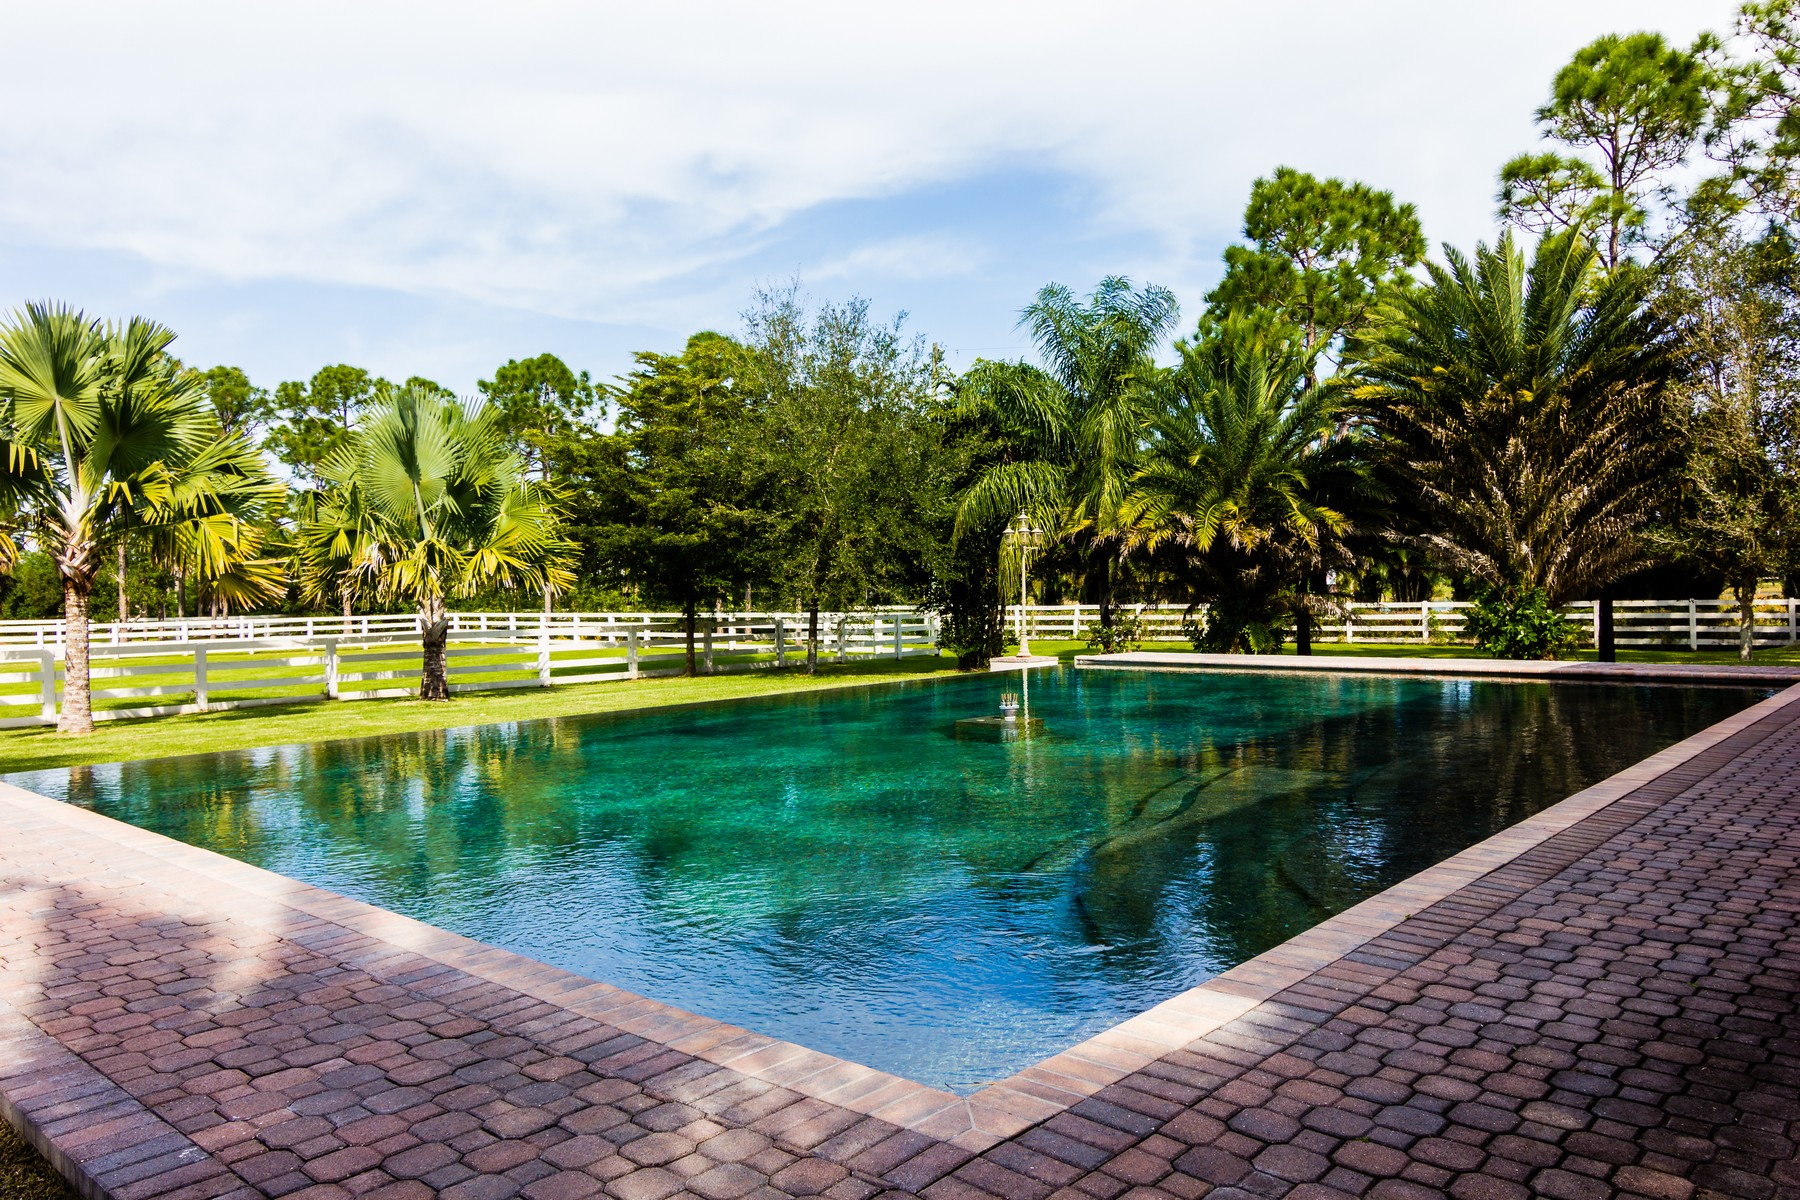 Property For Sale at Exquisite 5+ acre equestrian estate